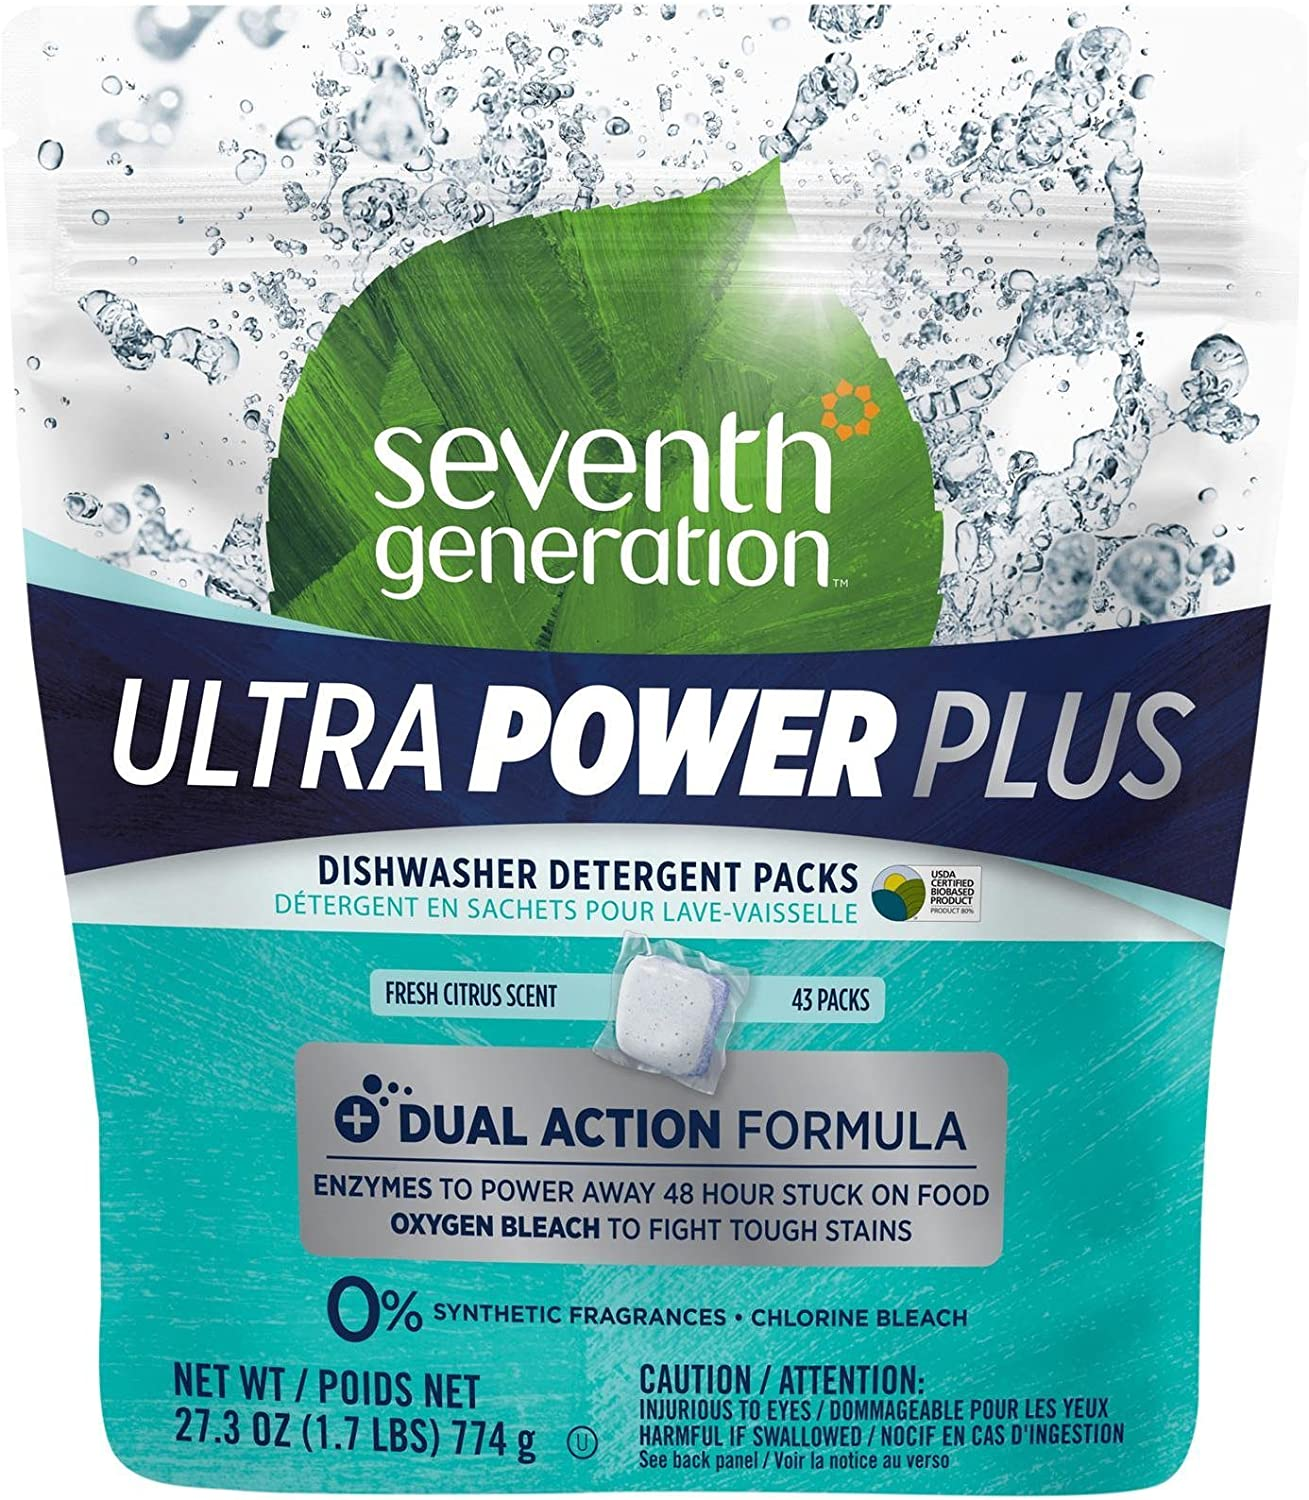 Seventh Generation Dishwasher Detergent Packs, Fresh Citrus Scent, 43 Count